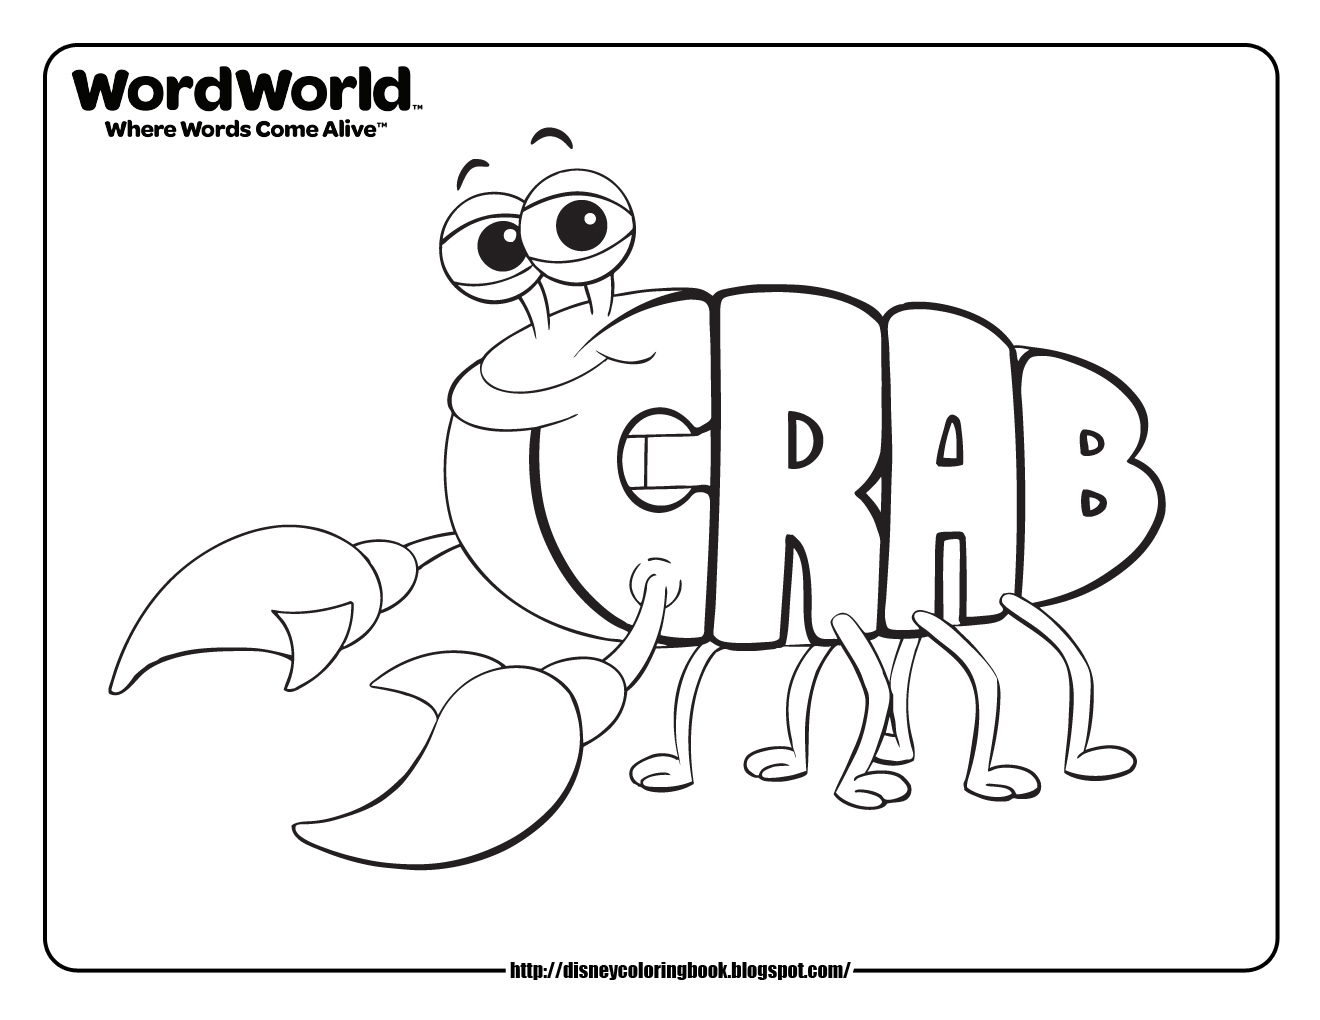 Disney Coloring Pages And Sheets For Kids: WordWorld 2